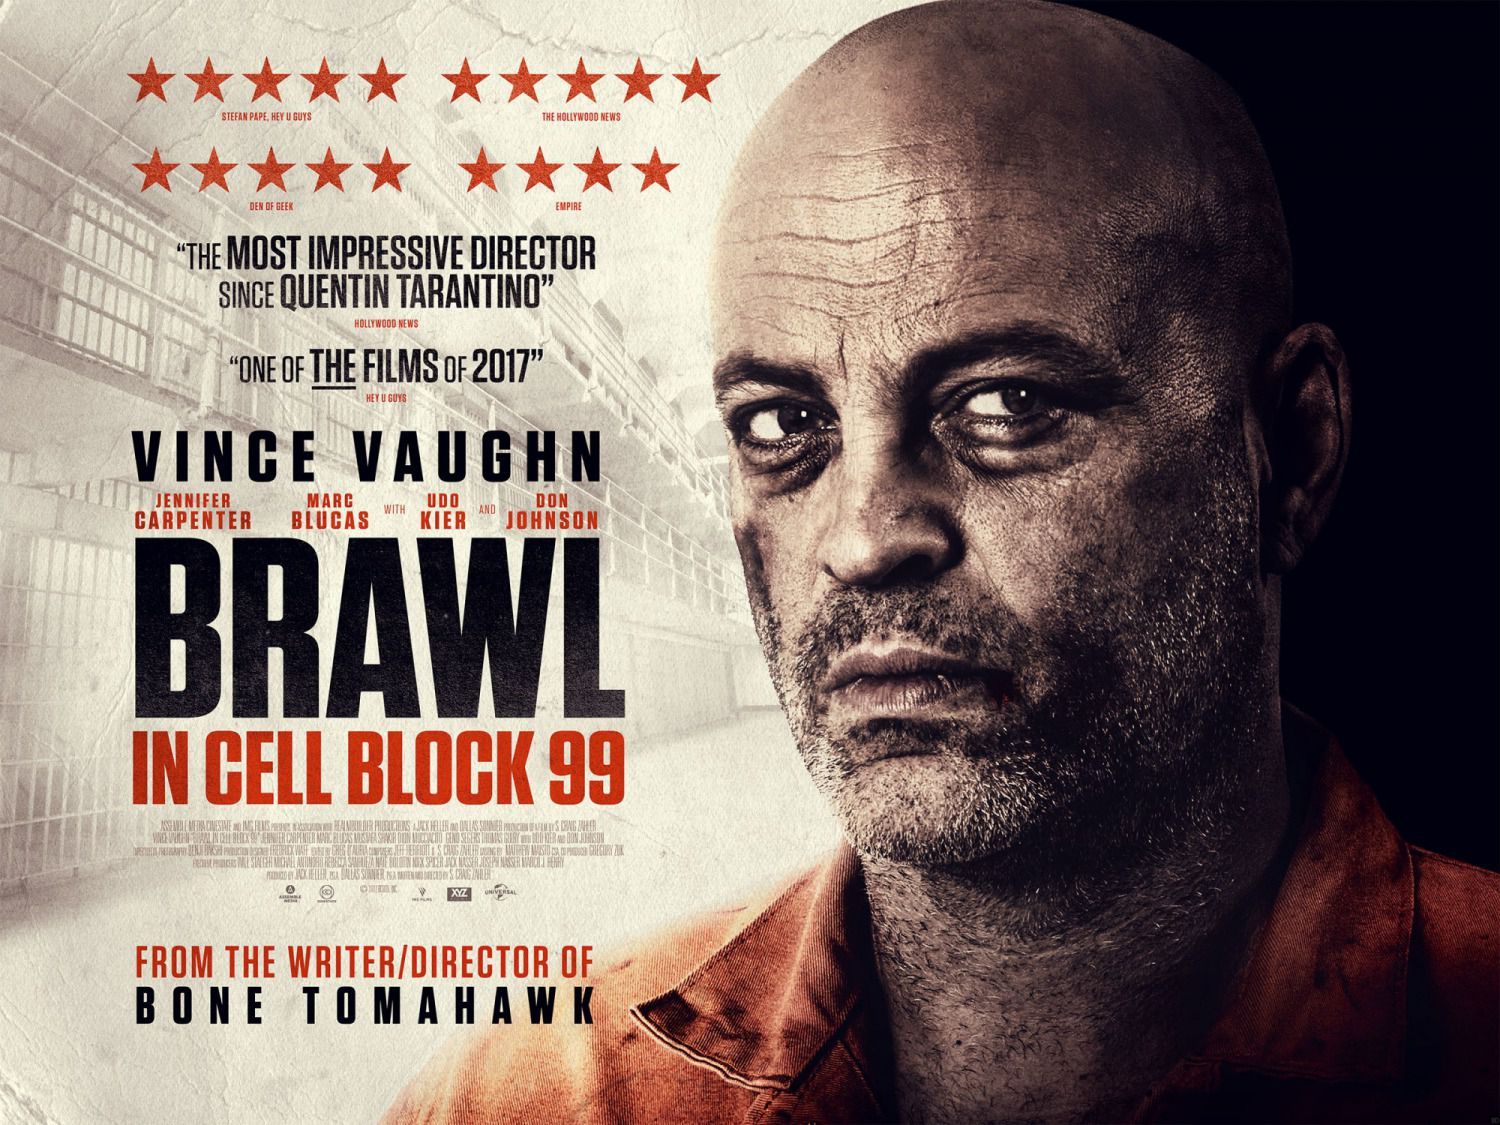 Brawl in Cell Block 99 - Vince Vaughn - Jennifer Carpenter - Don Johnson - Udo Kier - film poster